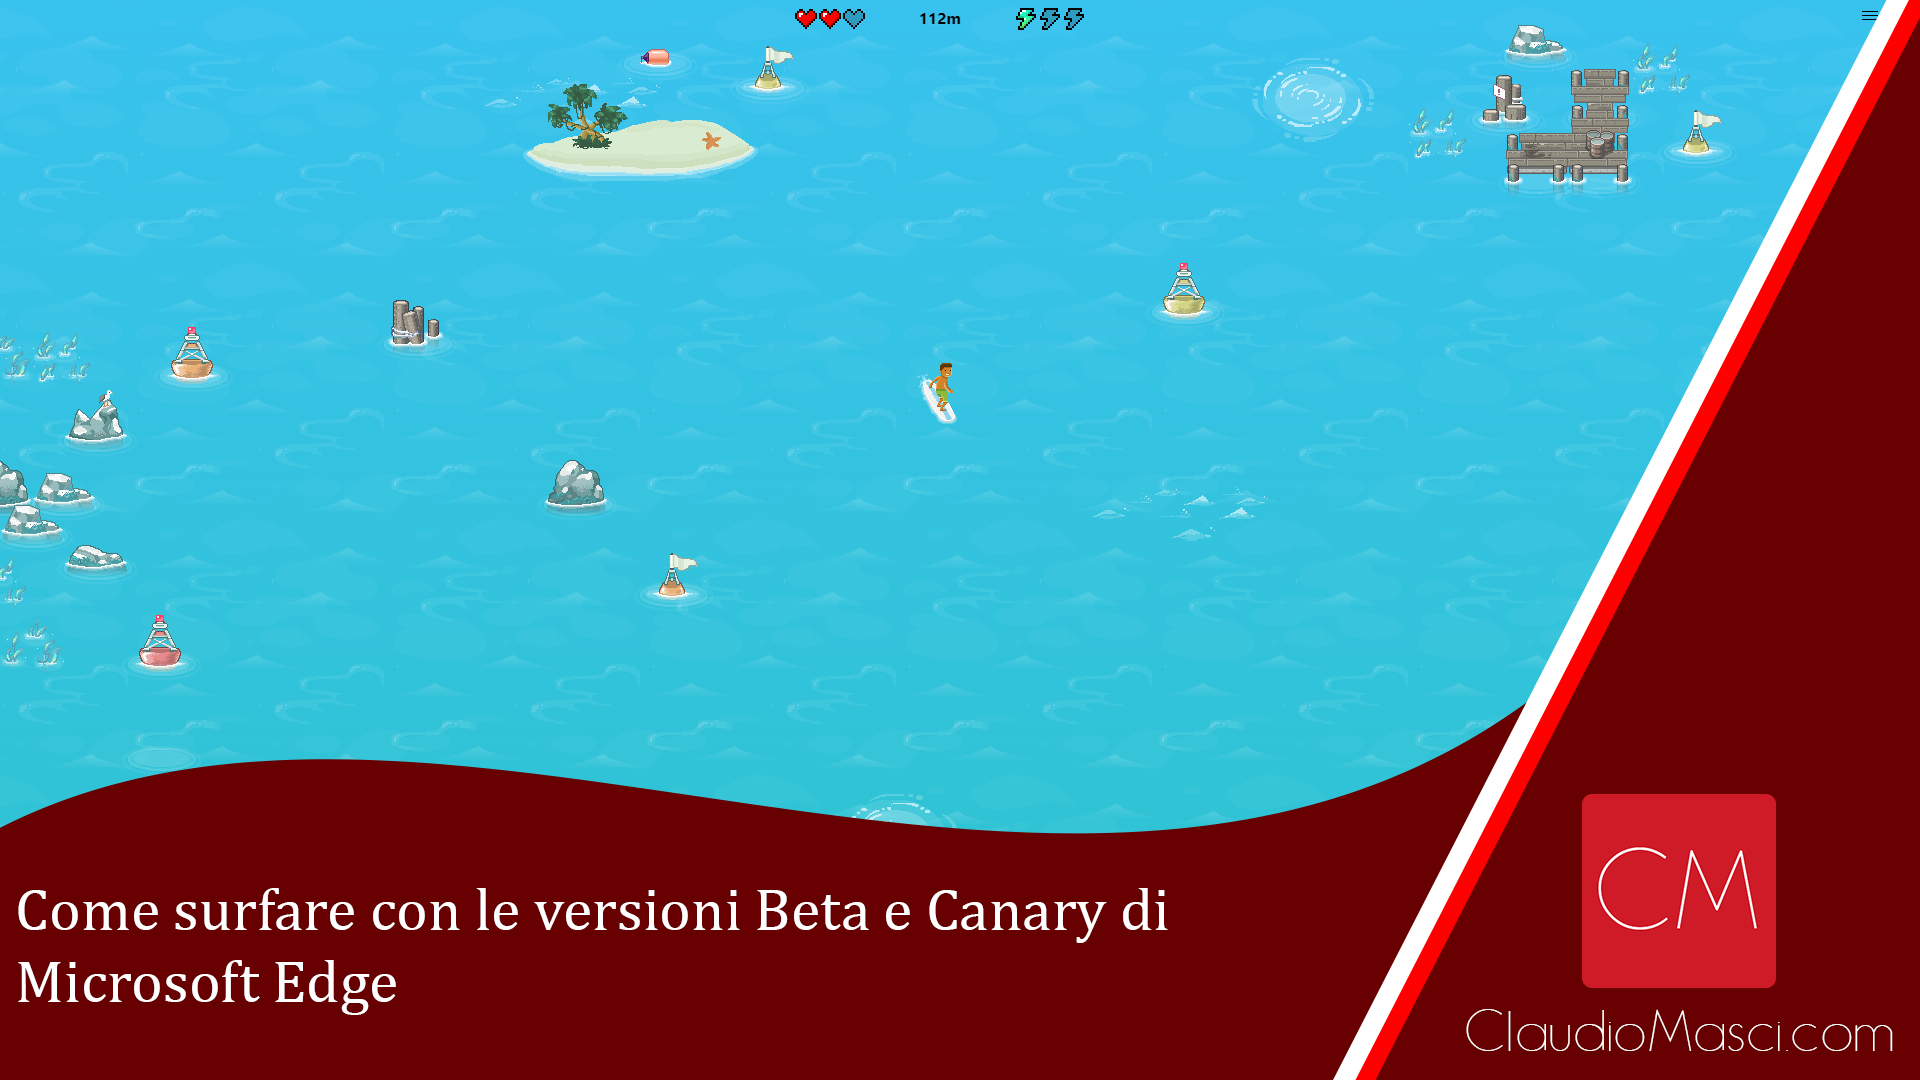 Come surfare con le versioni Beta e Canary di Microsoft Edge